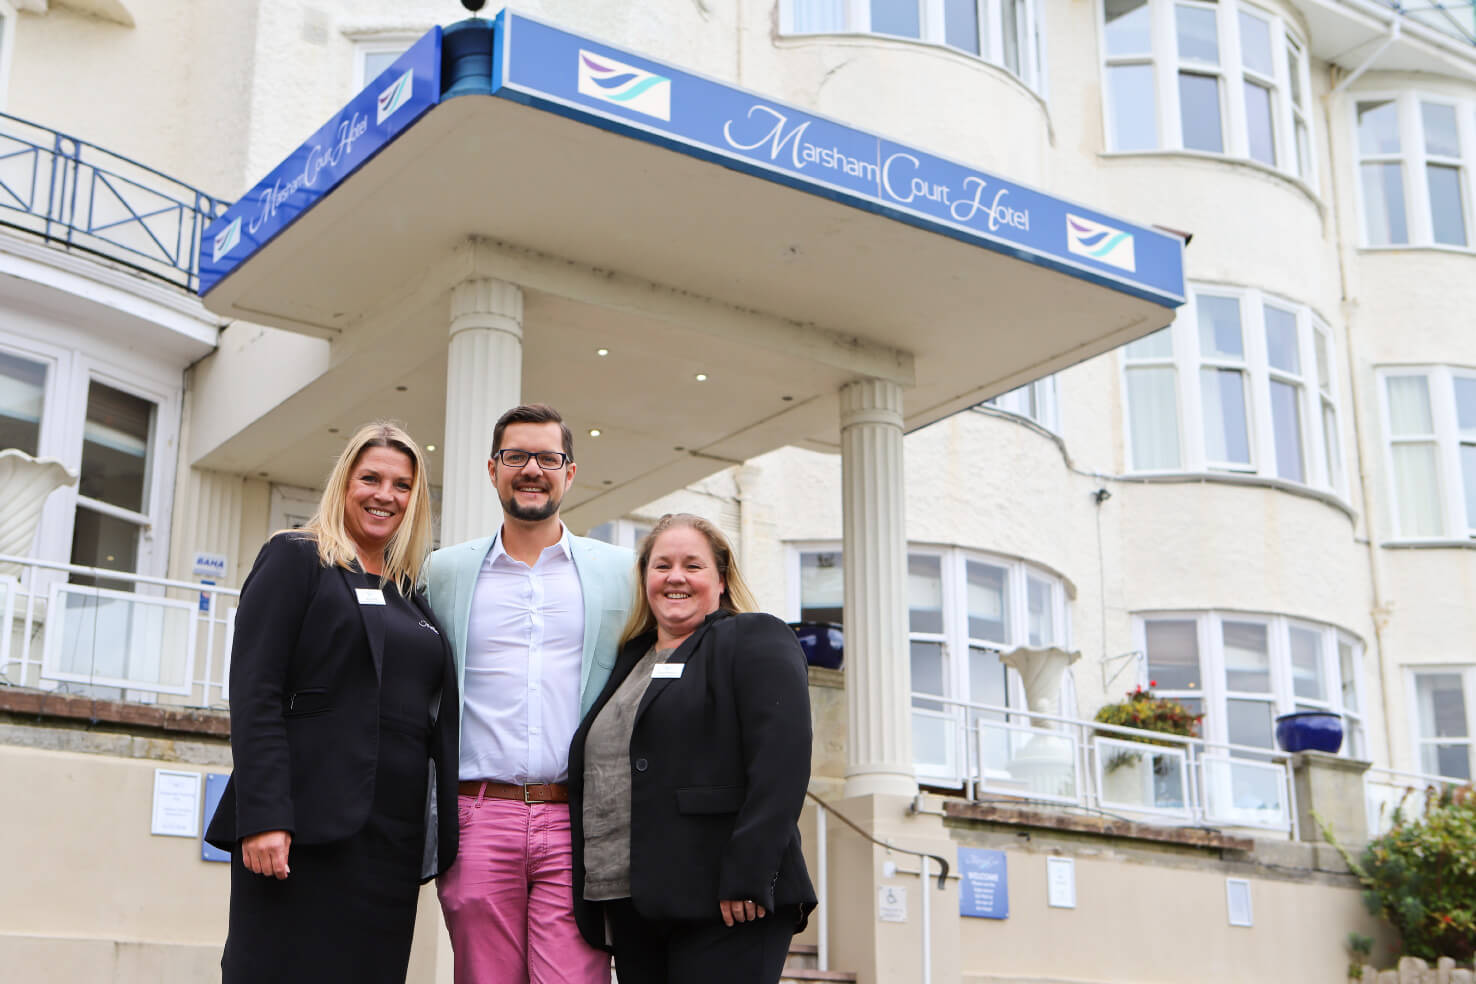 Family Hotels Bournemouth,Wedding Venues Bournemouth,Hotel Wedding Venues Bournemouth